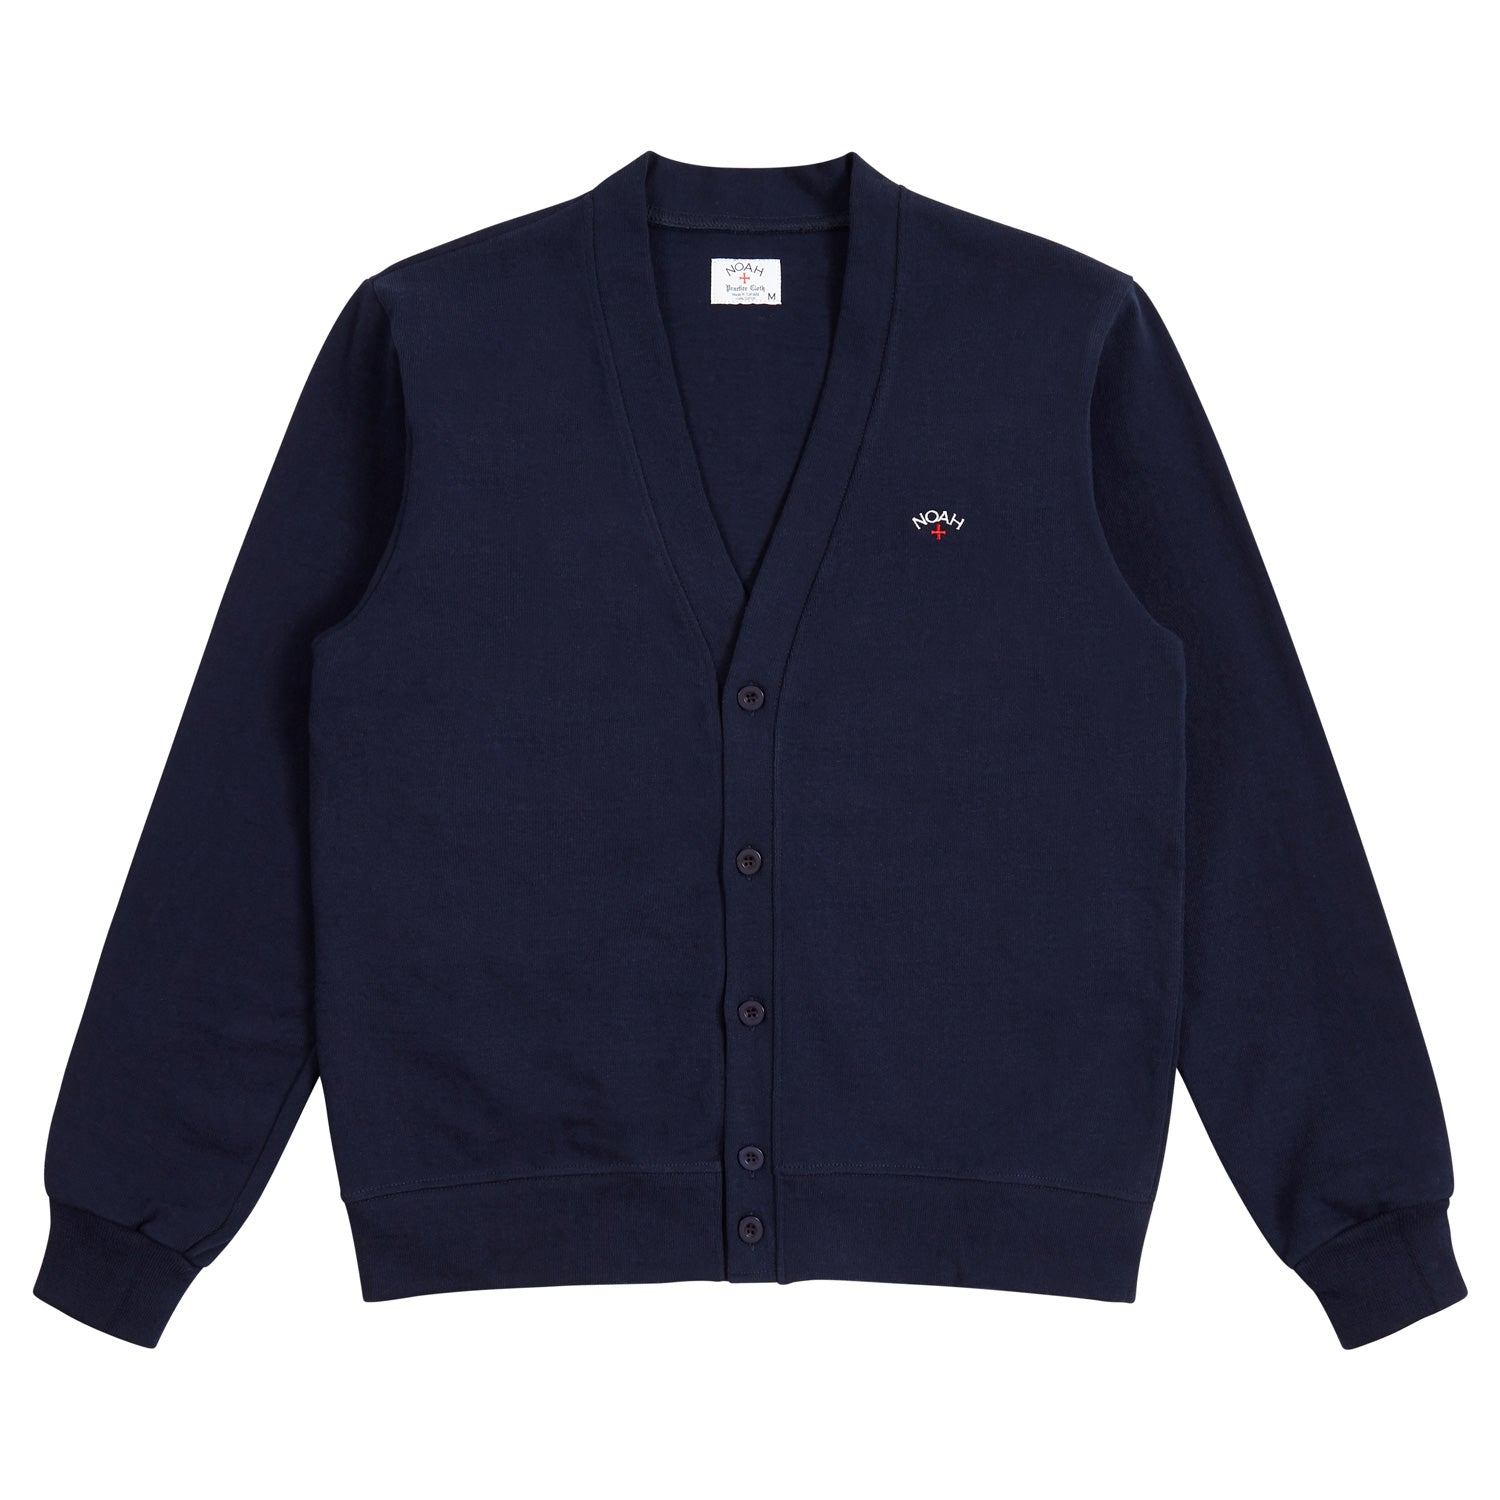 color:navy